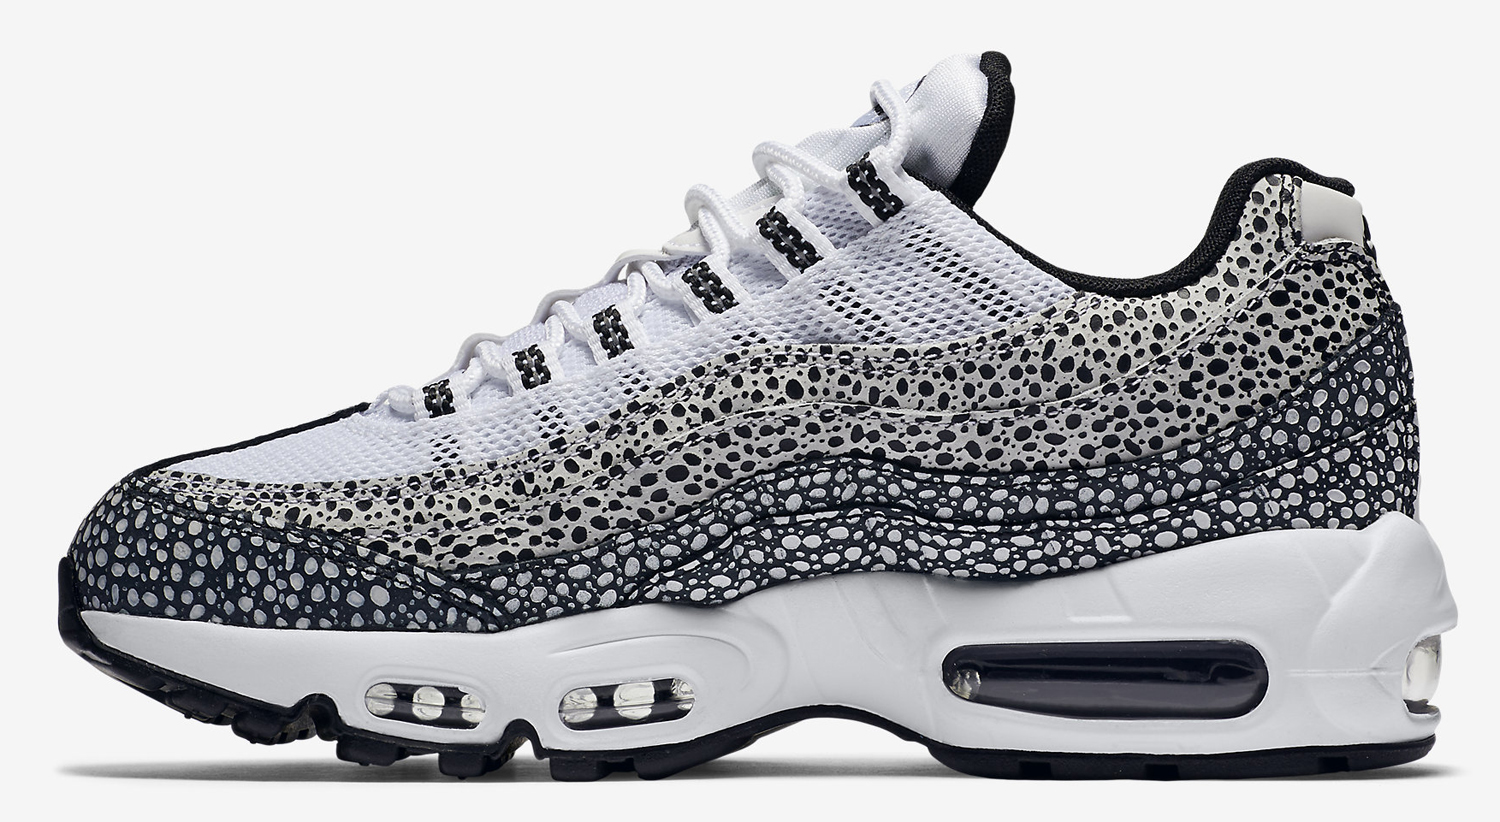 acheter en ligne 1e29d a48ce Nike Takes Air Max 95s on Safari | Sole Collector